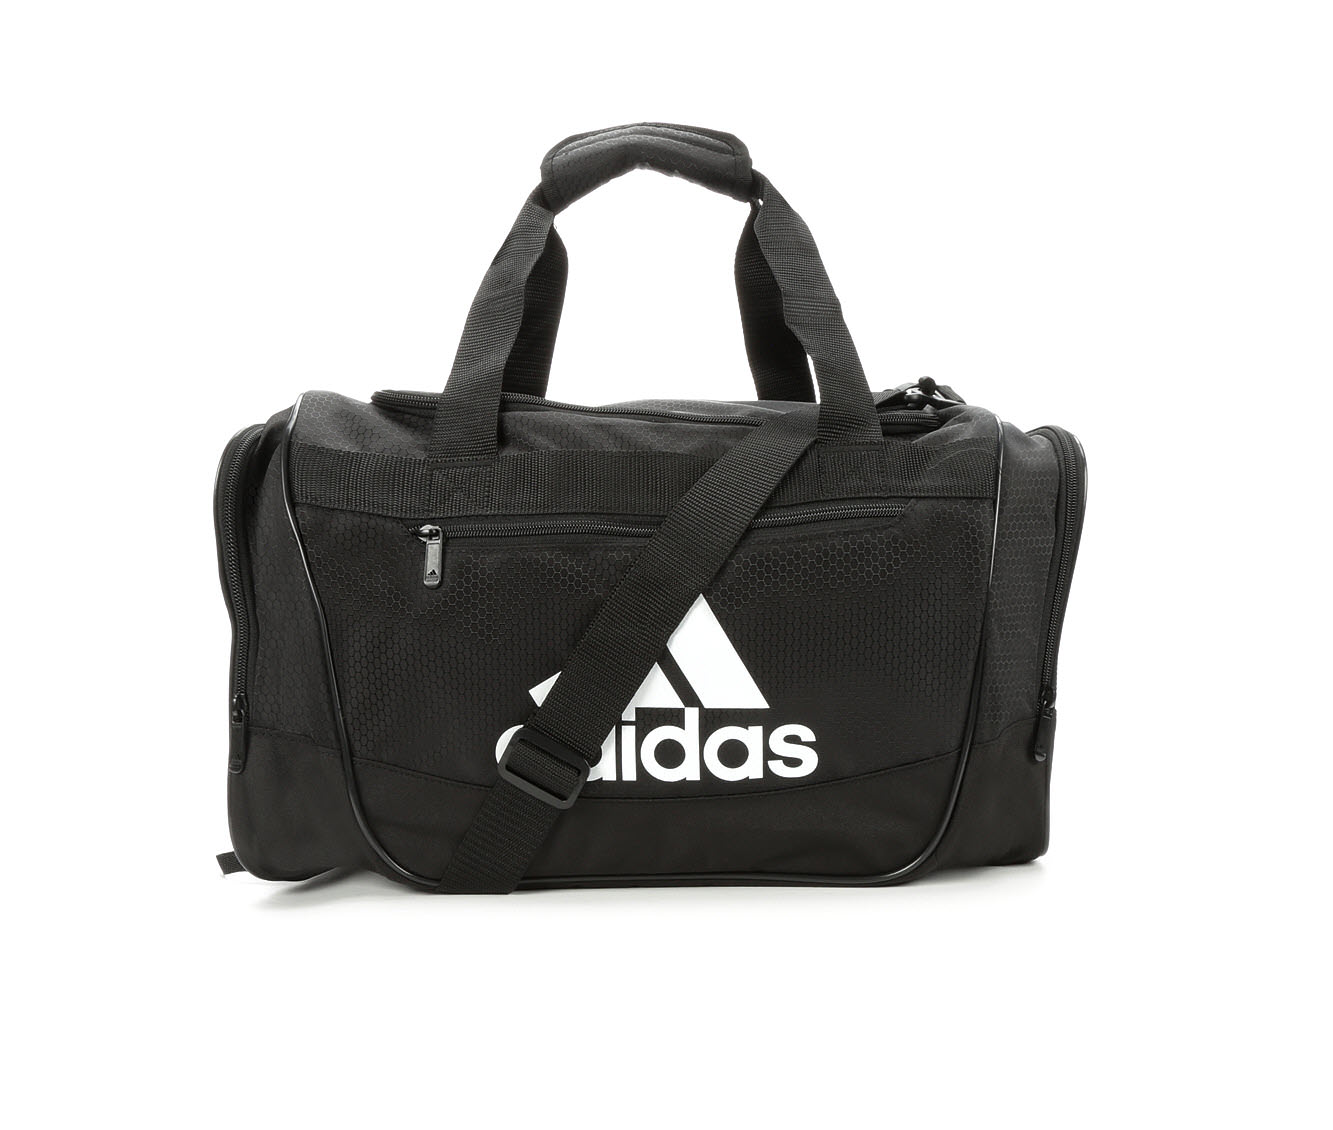 Image of Women's Adidas Defender III Small Duffel Bag (Black - Size UNSZ)